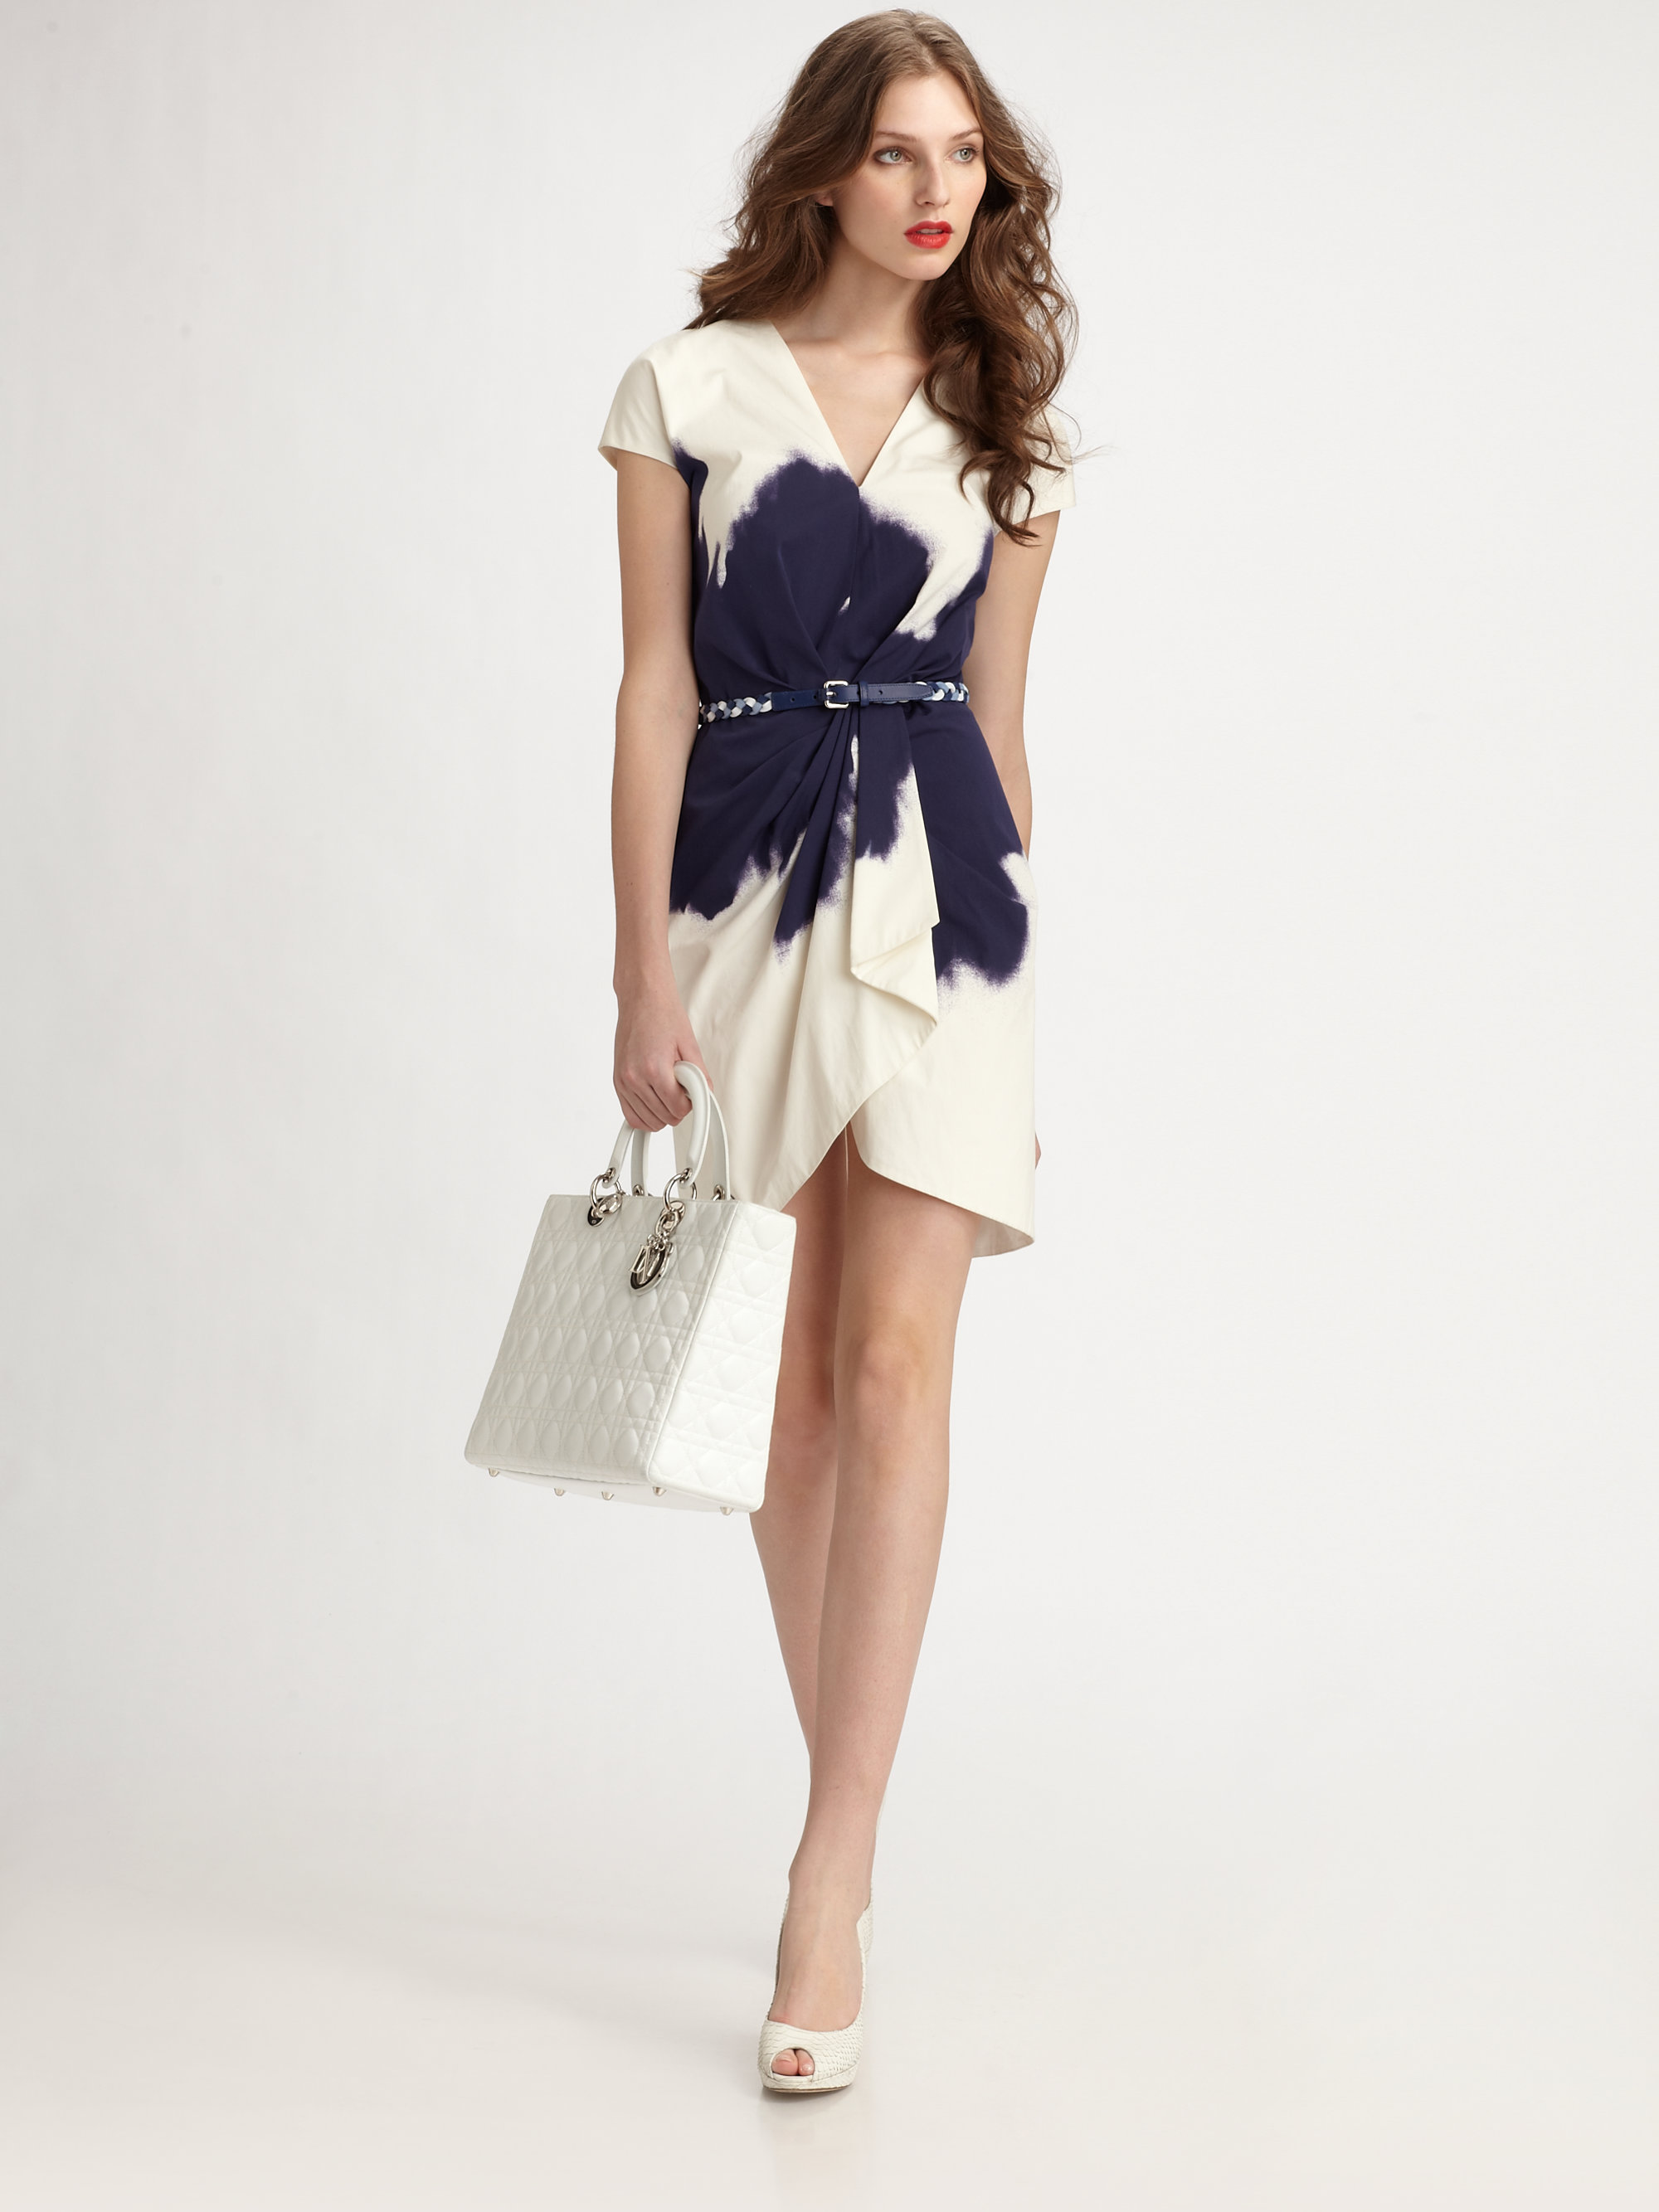 the gallery for gt dior mini dress 2013